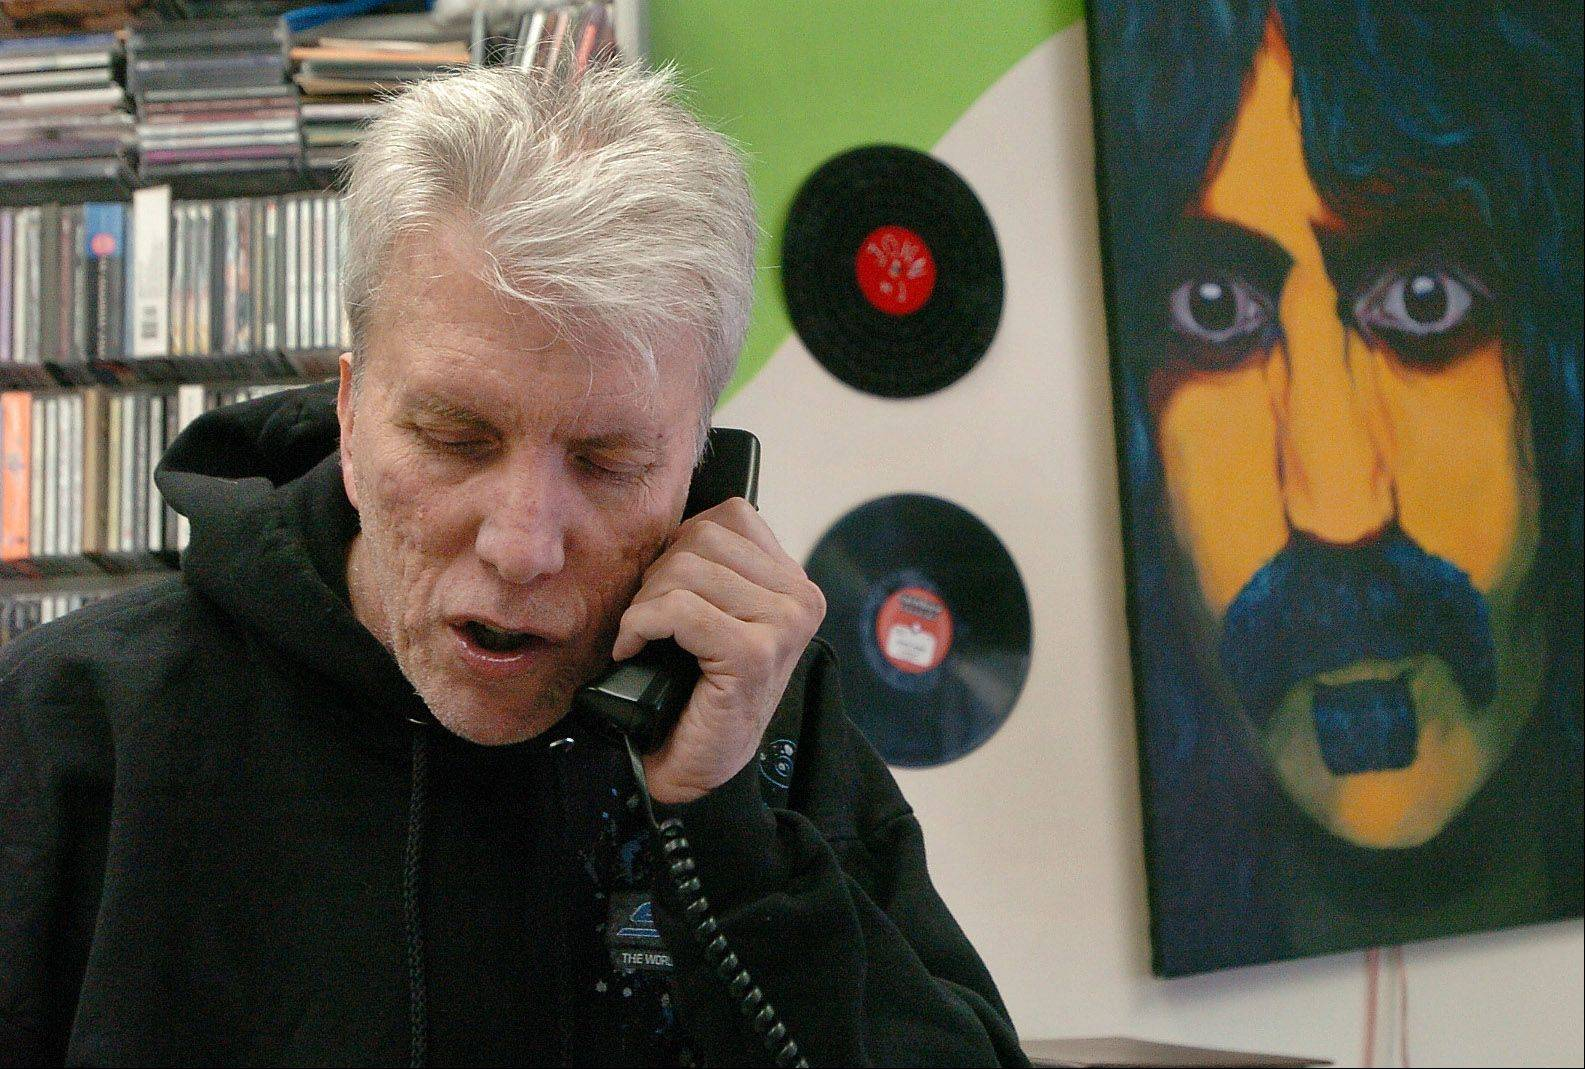 John Thominet owns Rainbow Records in Barrington, a largely-undiscovered record store.